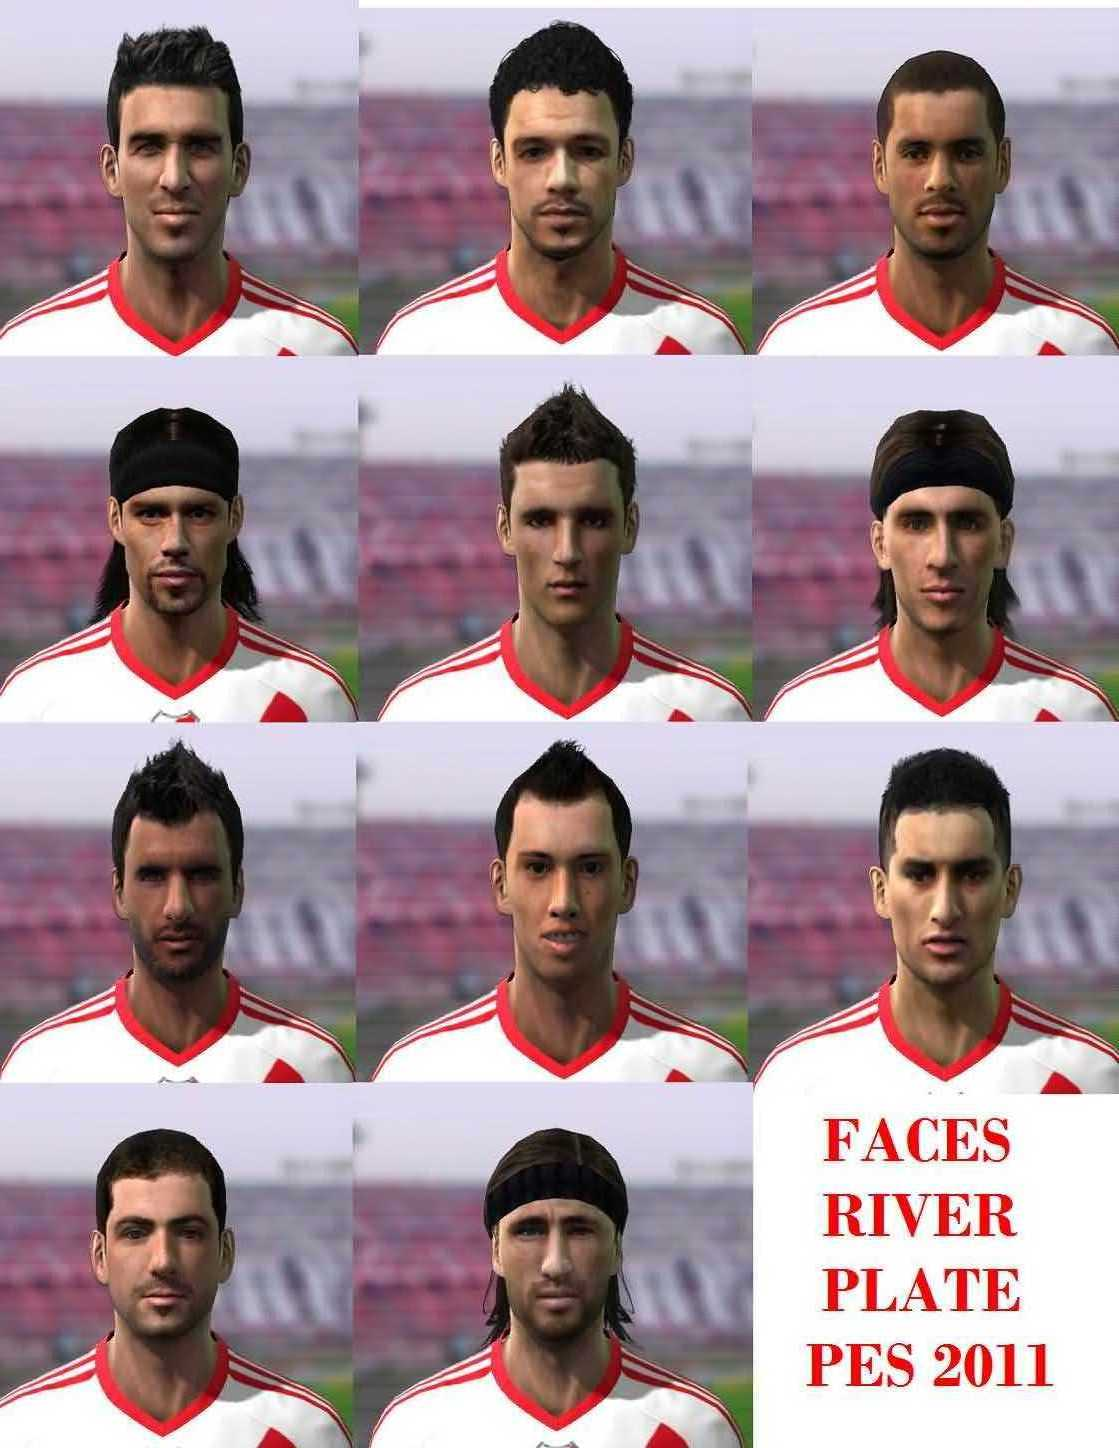 Faces de River para PES 2011 by: Crihh y Fede14